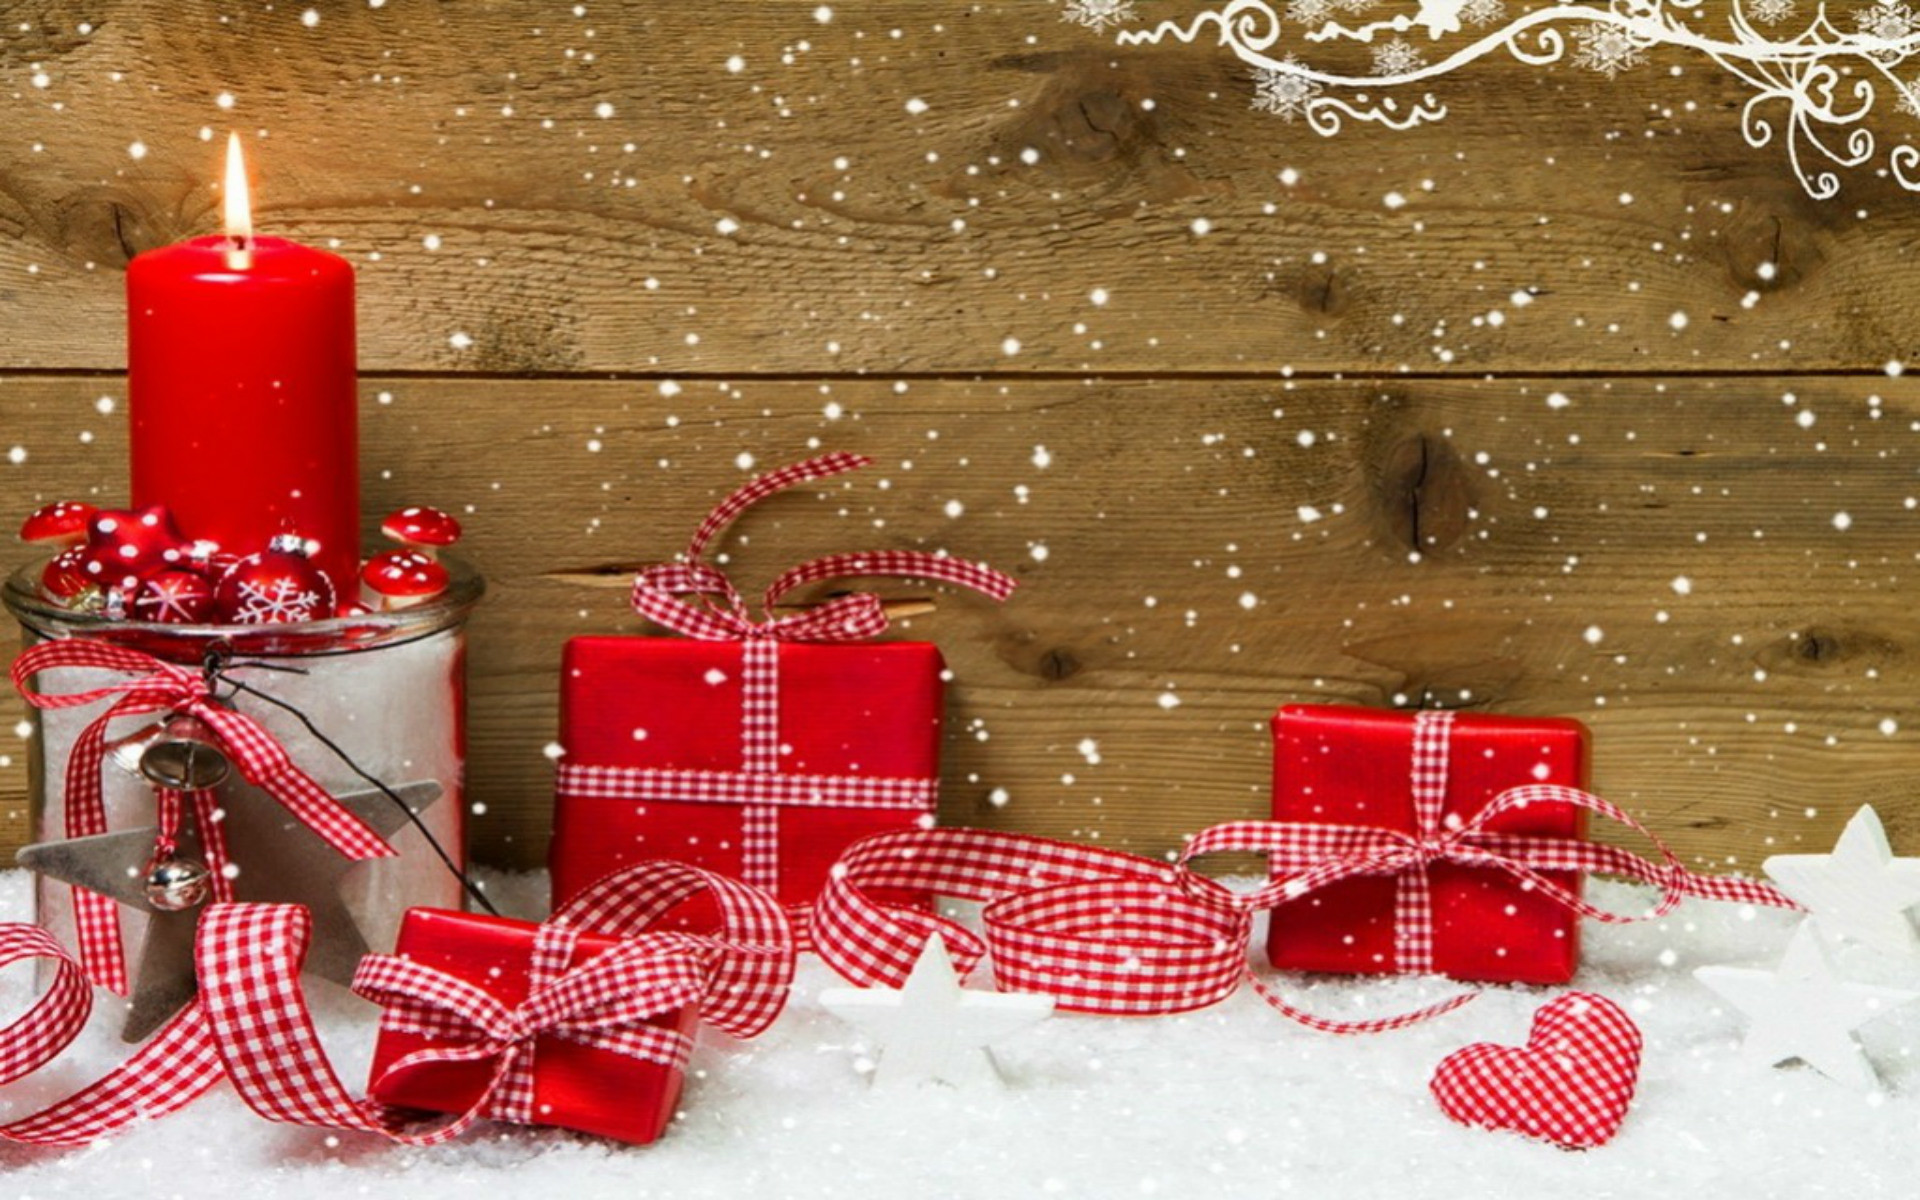 Download Animated Wallpapers For Mobile Phone Desktop Christmas Wallpapers Backgrounds 65 Background